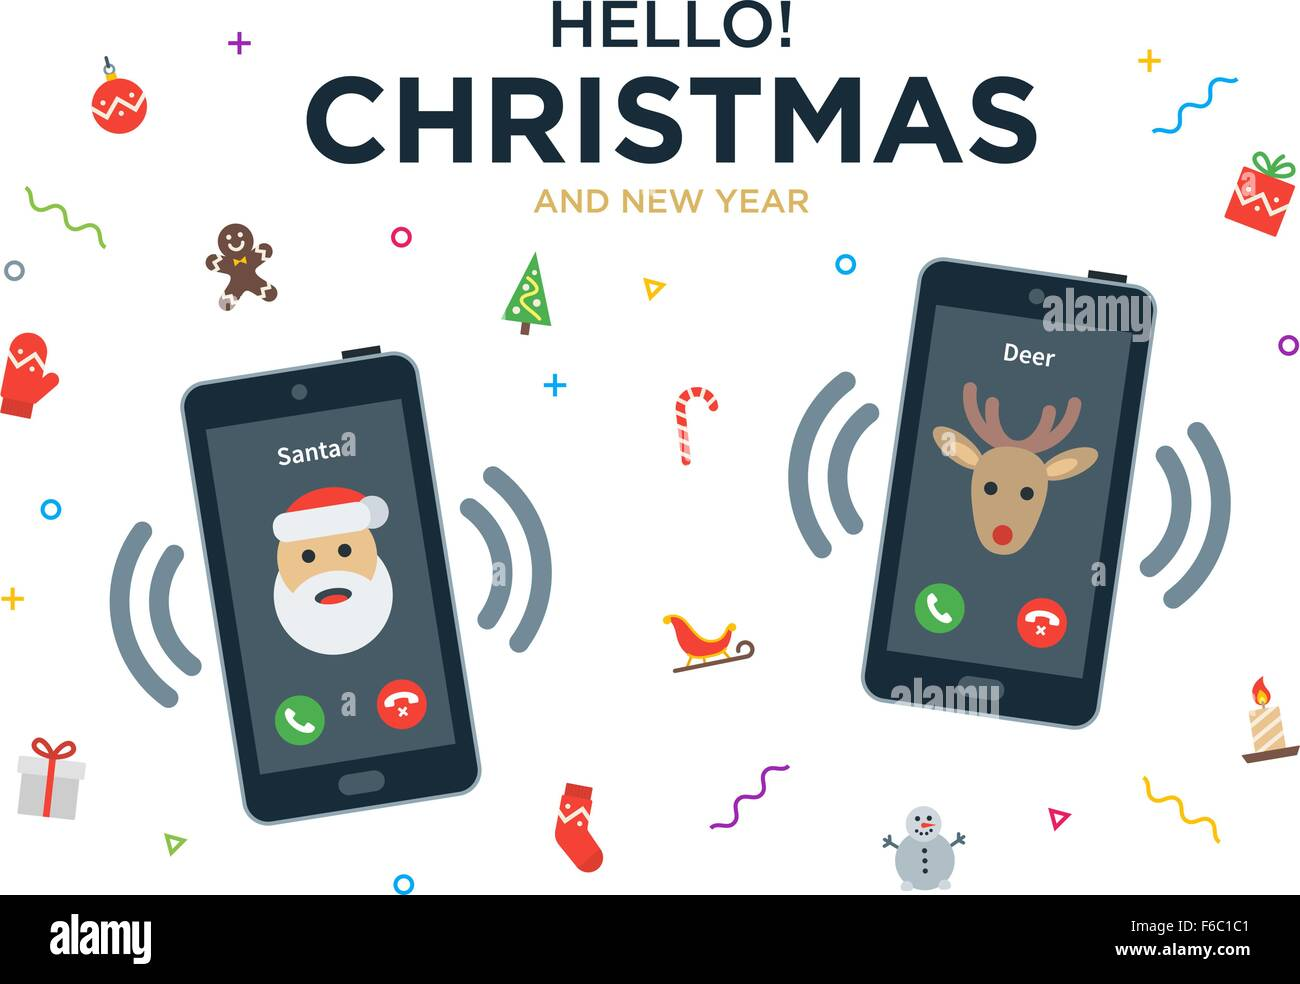 Christmas greeting card with phone call from santa claus and christmas greeting card with phone call from santa claus and reindeer m4hsunfo